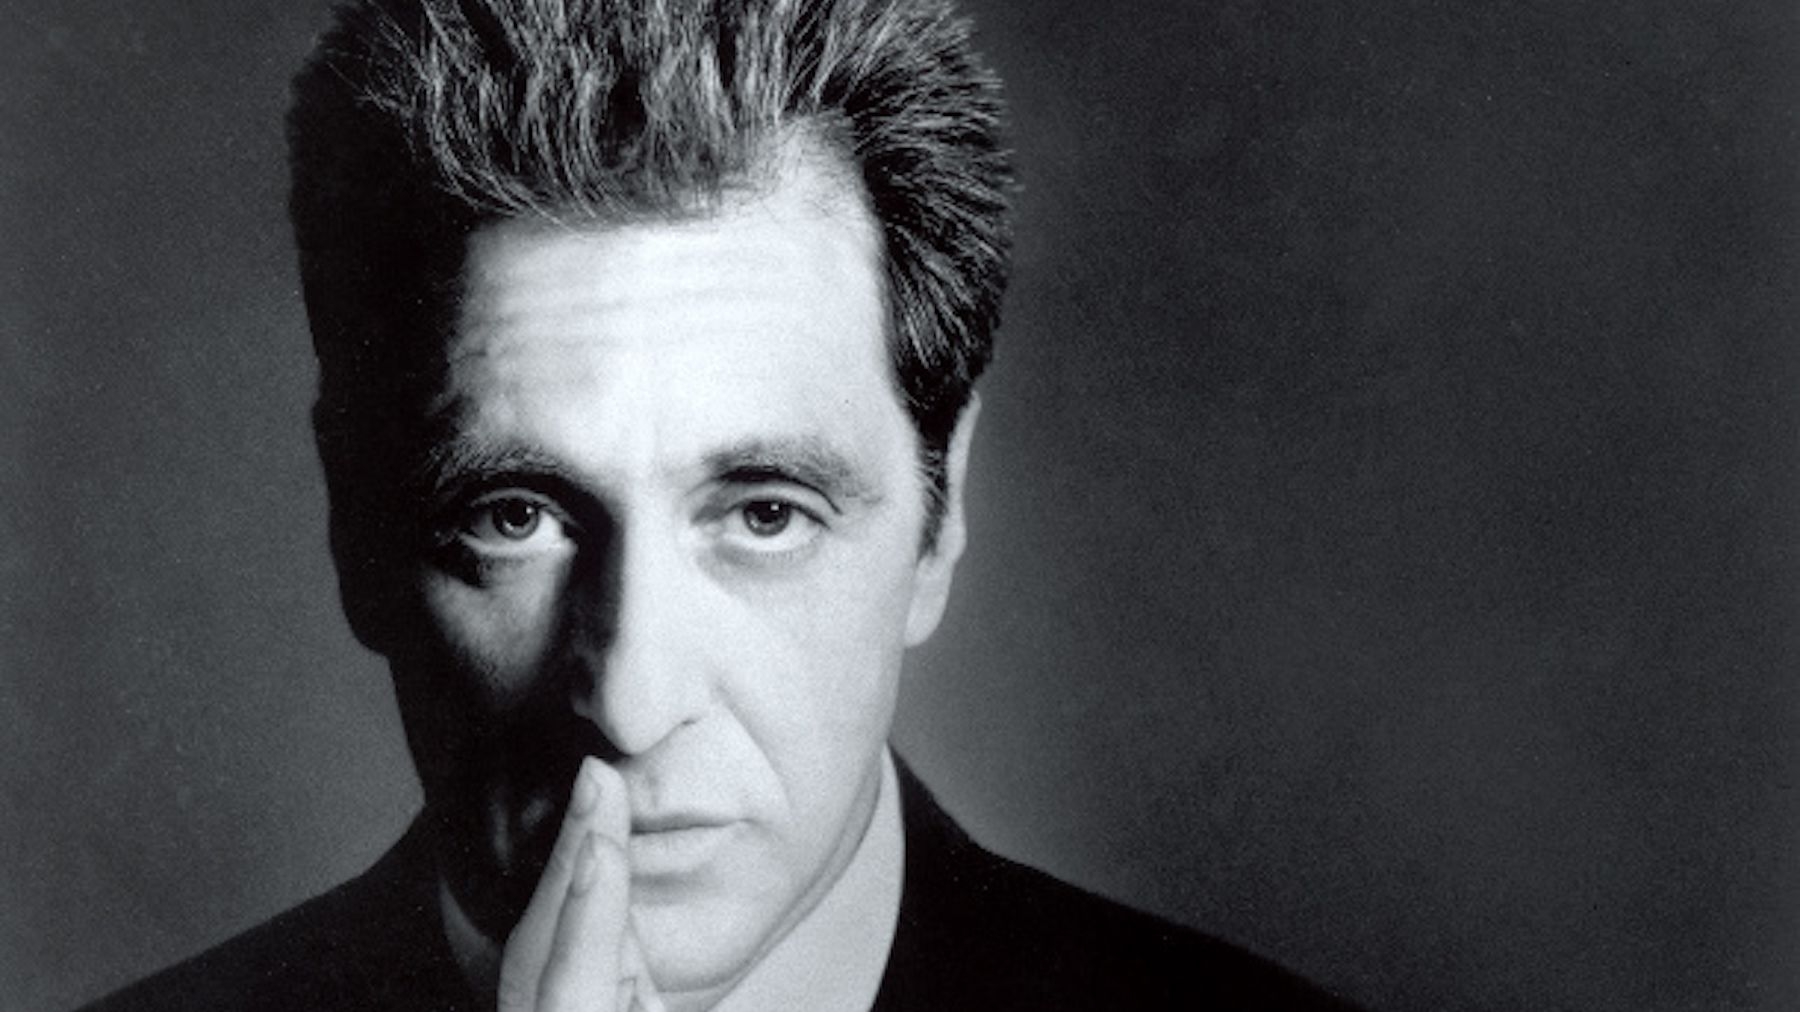 20 Facts About The Godfather Part III